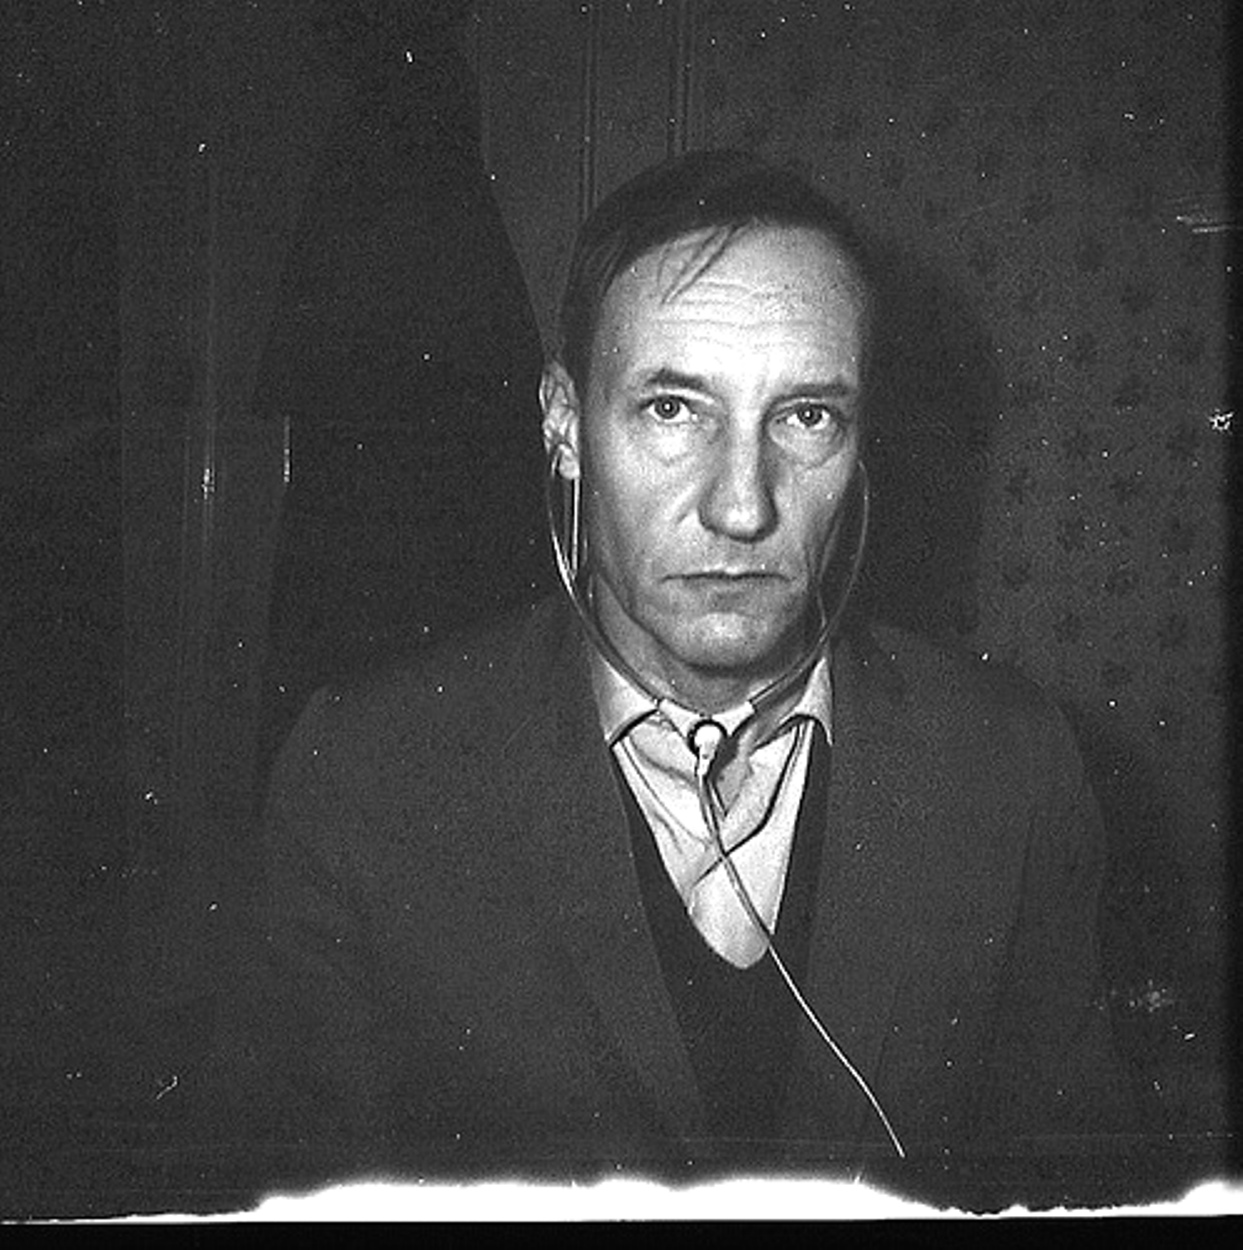 William S. Burroughs negli anni '60